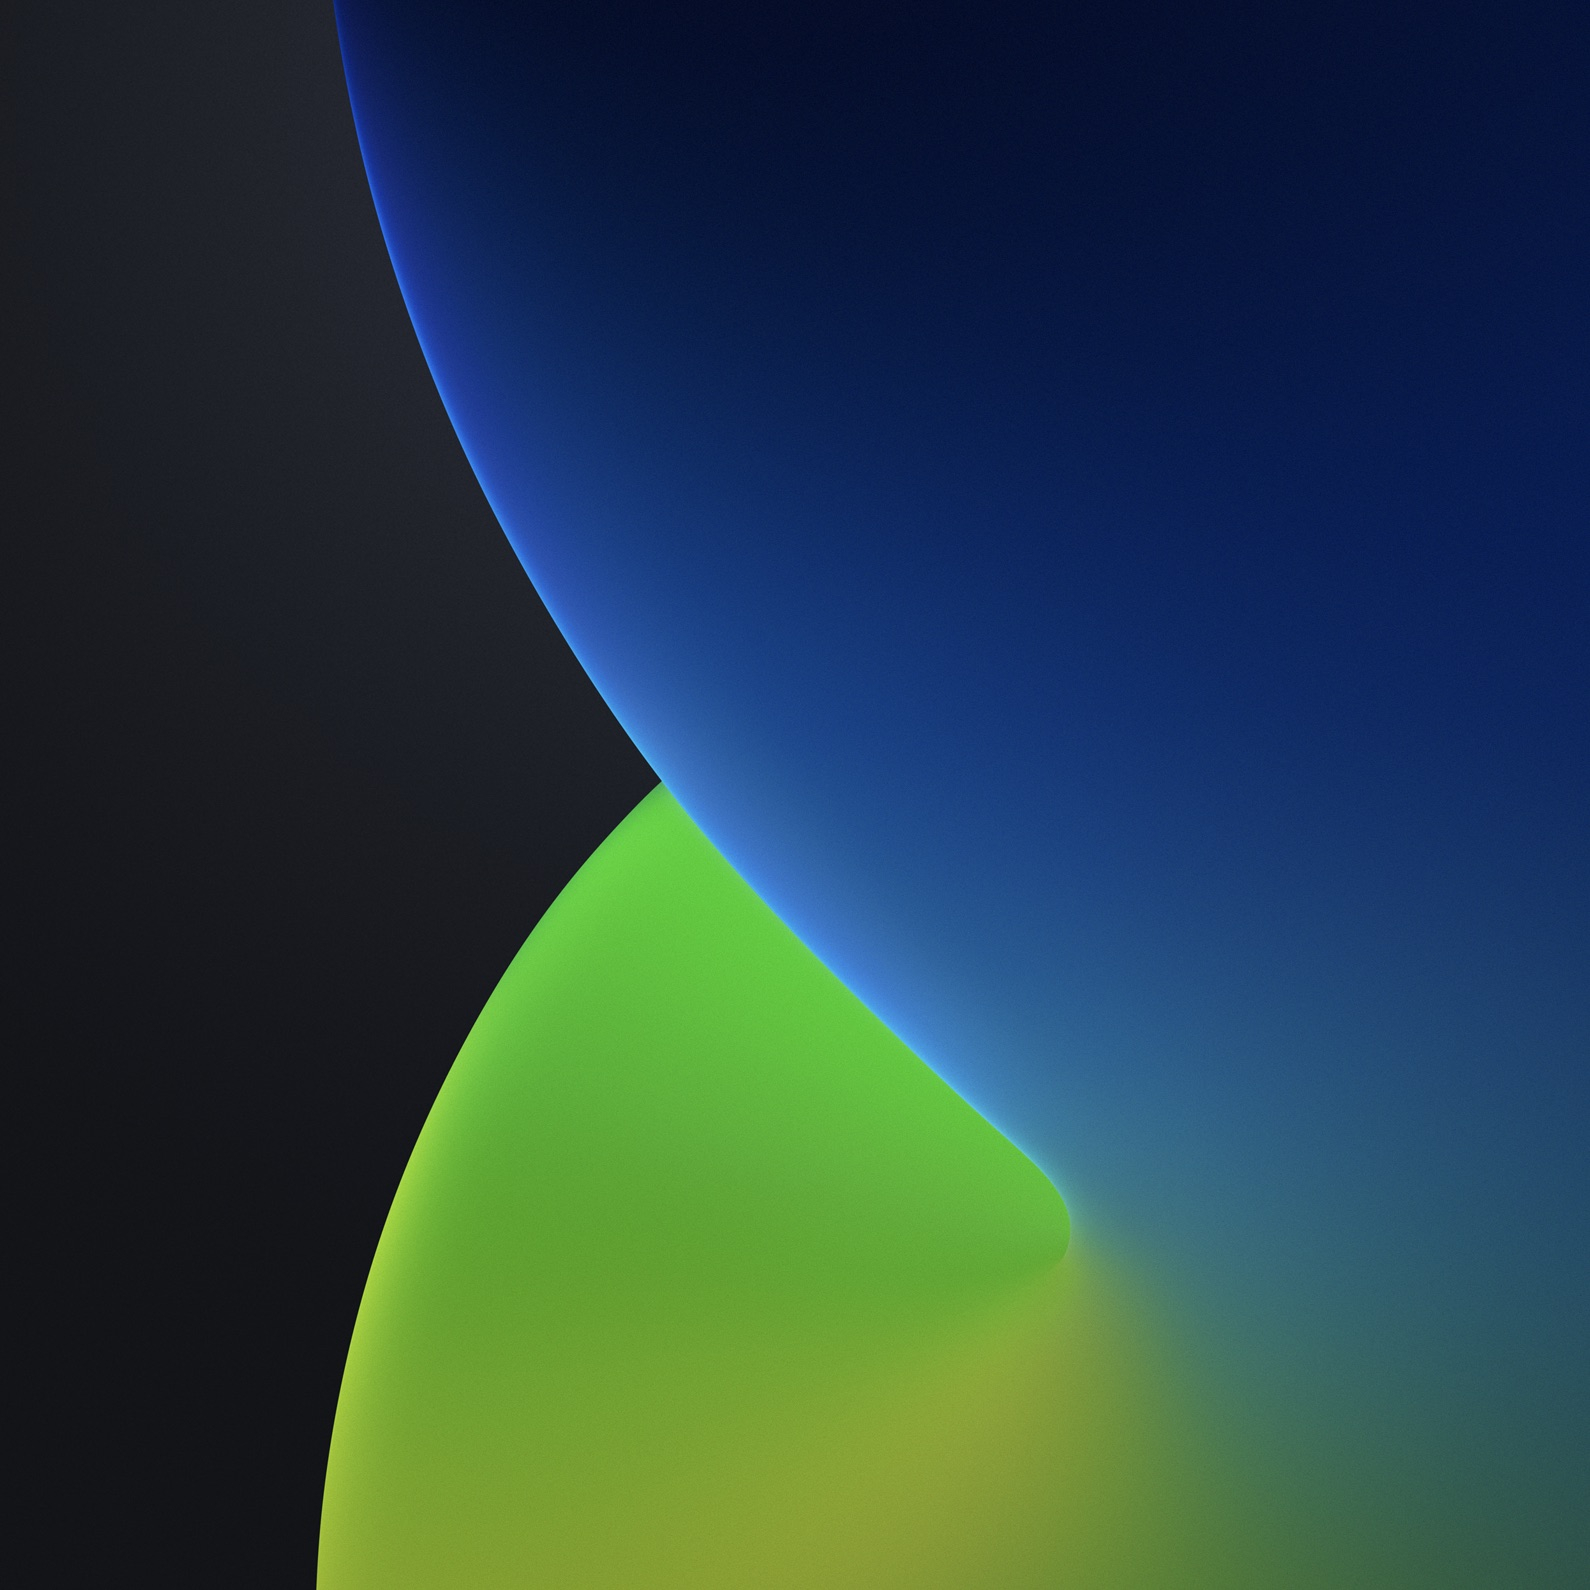 ios 14 iphone wallpapers